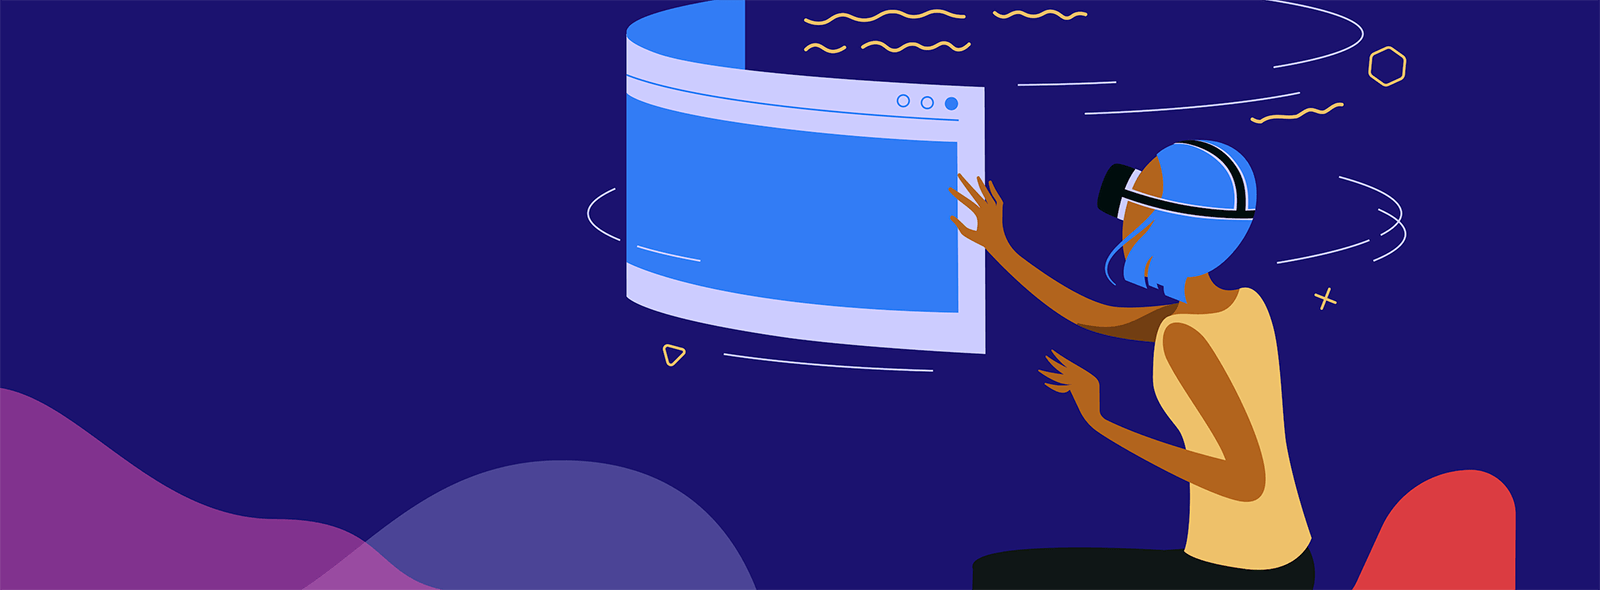 Illustration showing a woman using a VR headset navigating on a bending screen